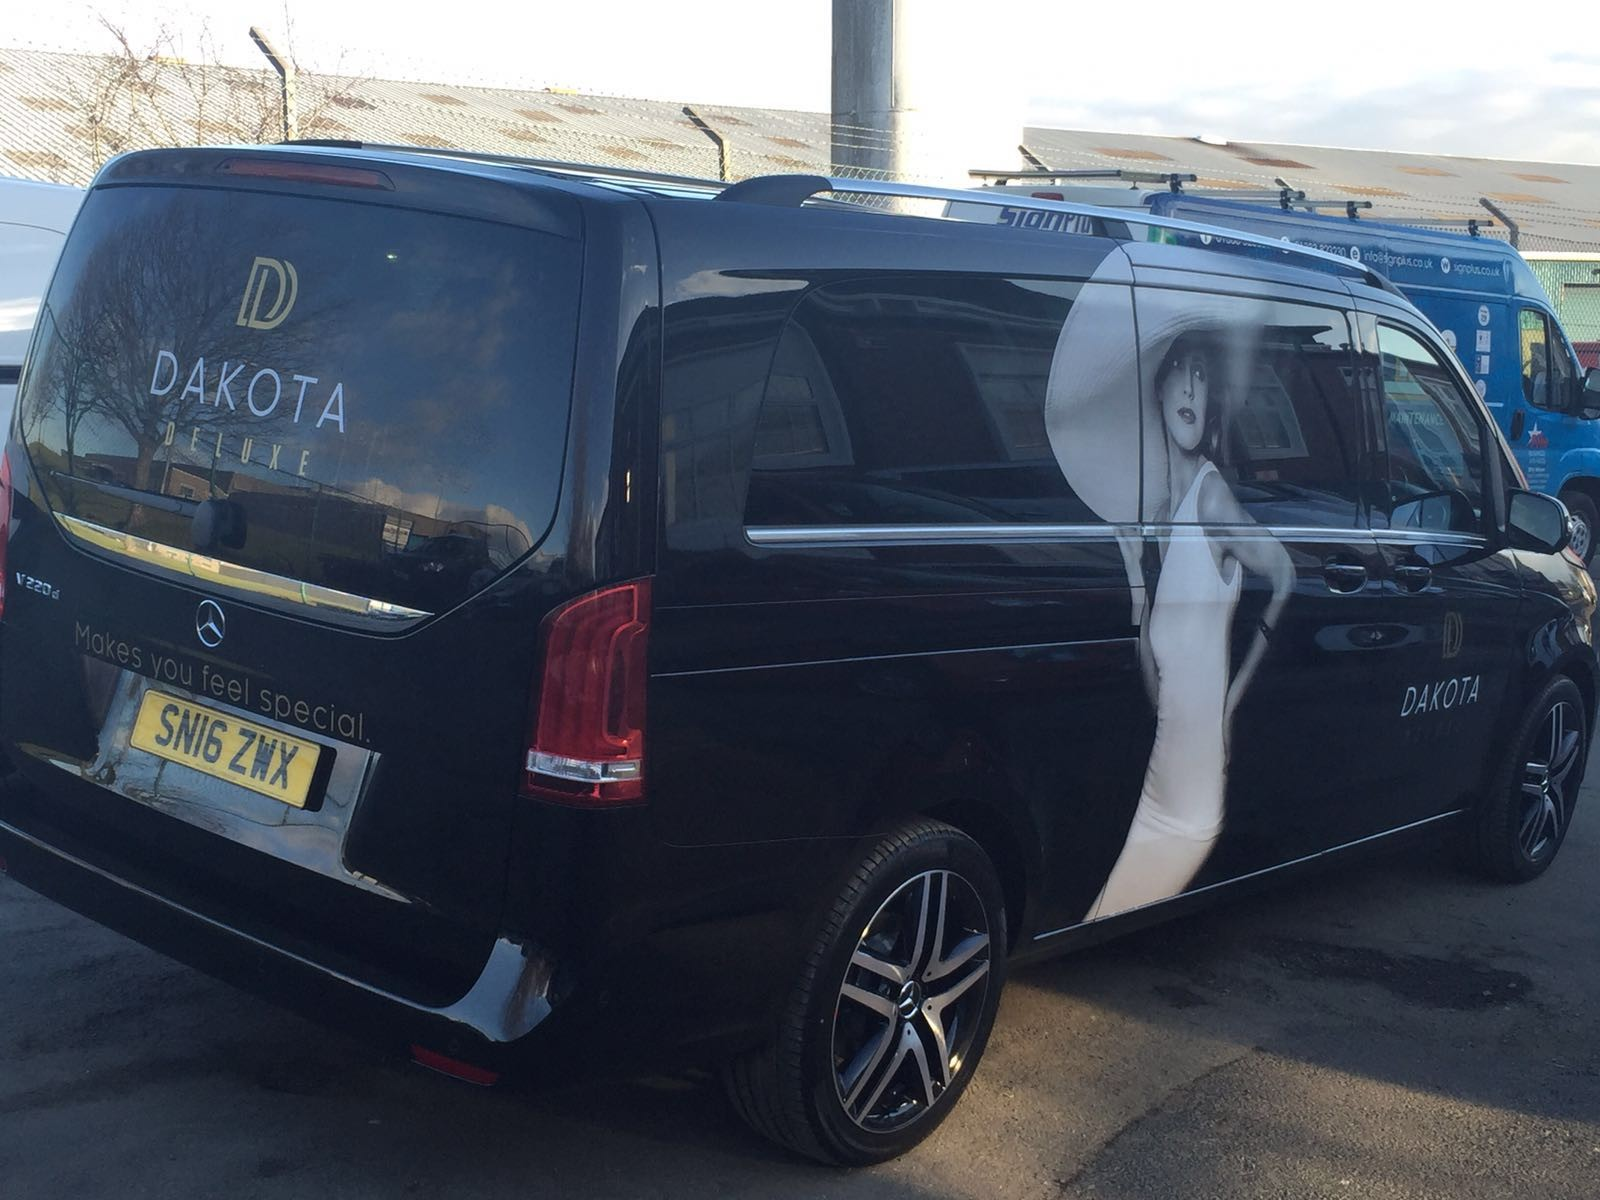 Vehicle Livery for Dakota Edinburgh